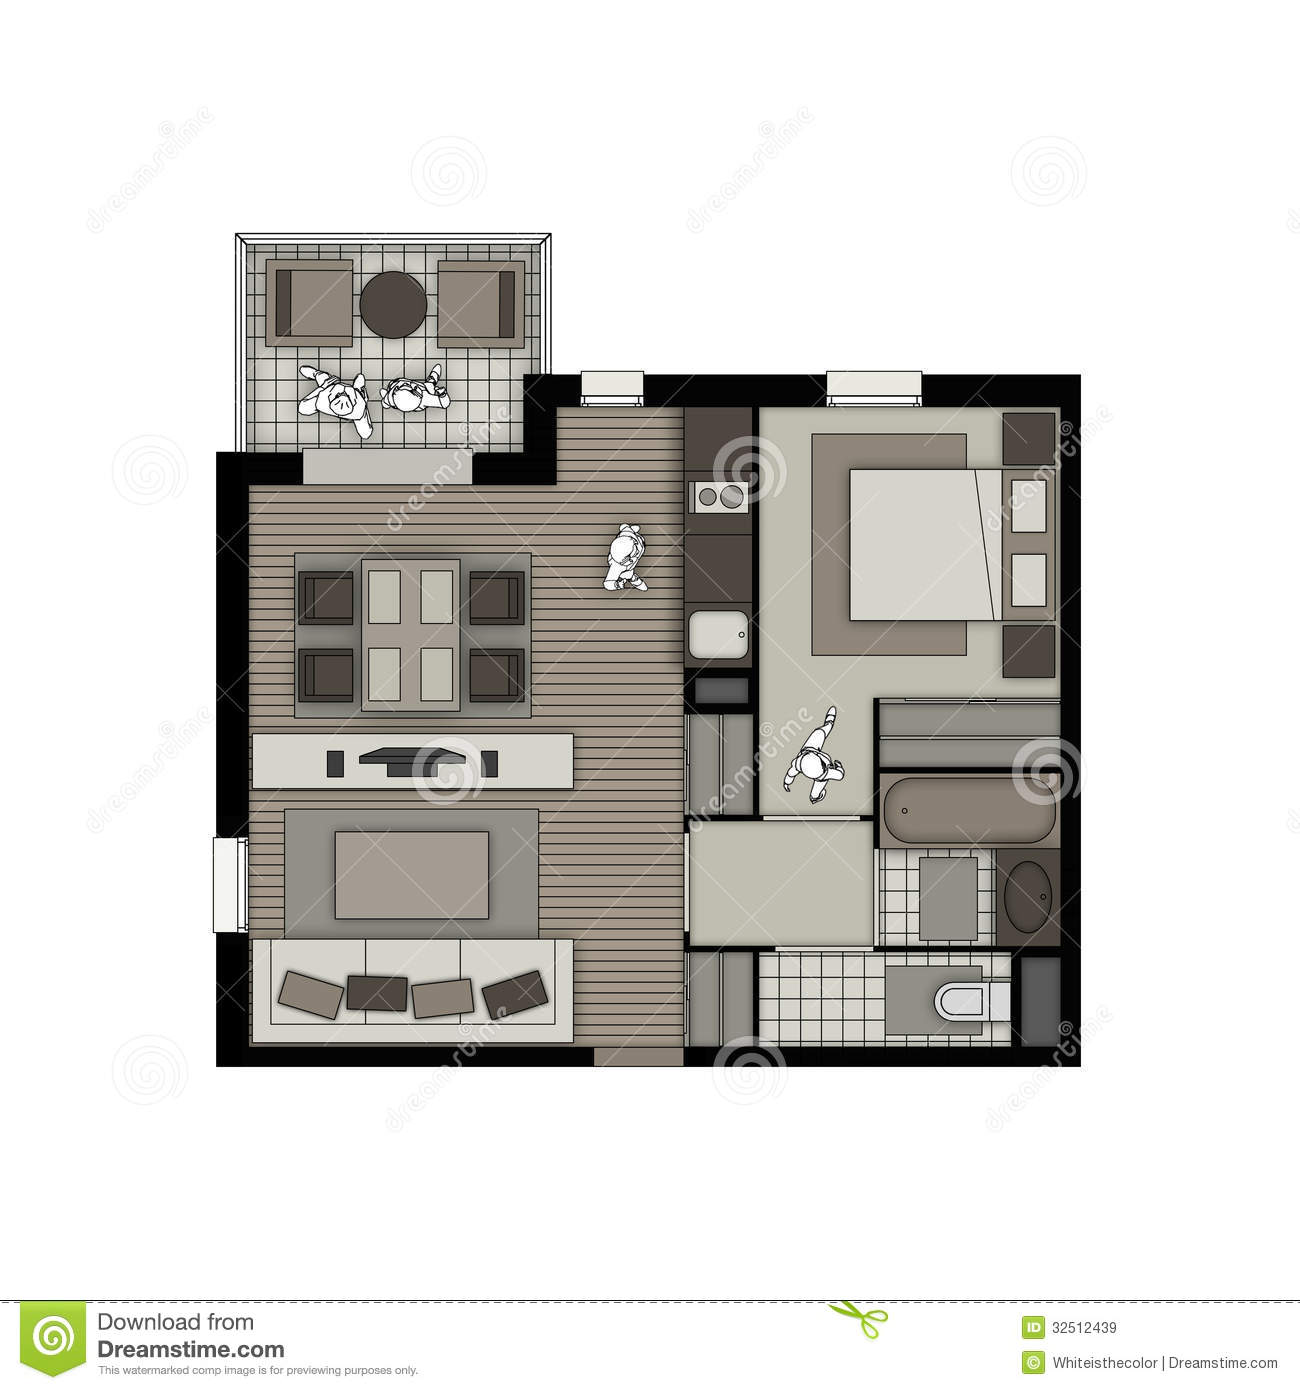 Two rooms apartment with balcony beige interior stock for Living room bedroom bathroom kitchen